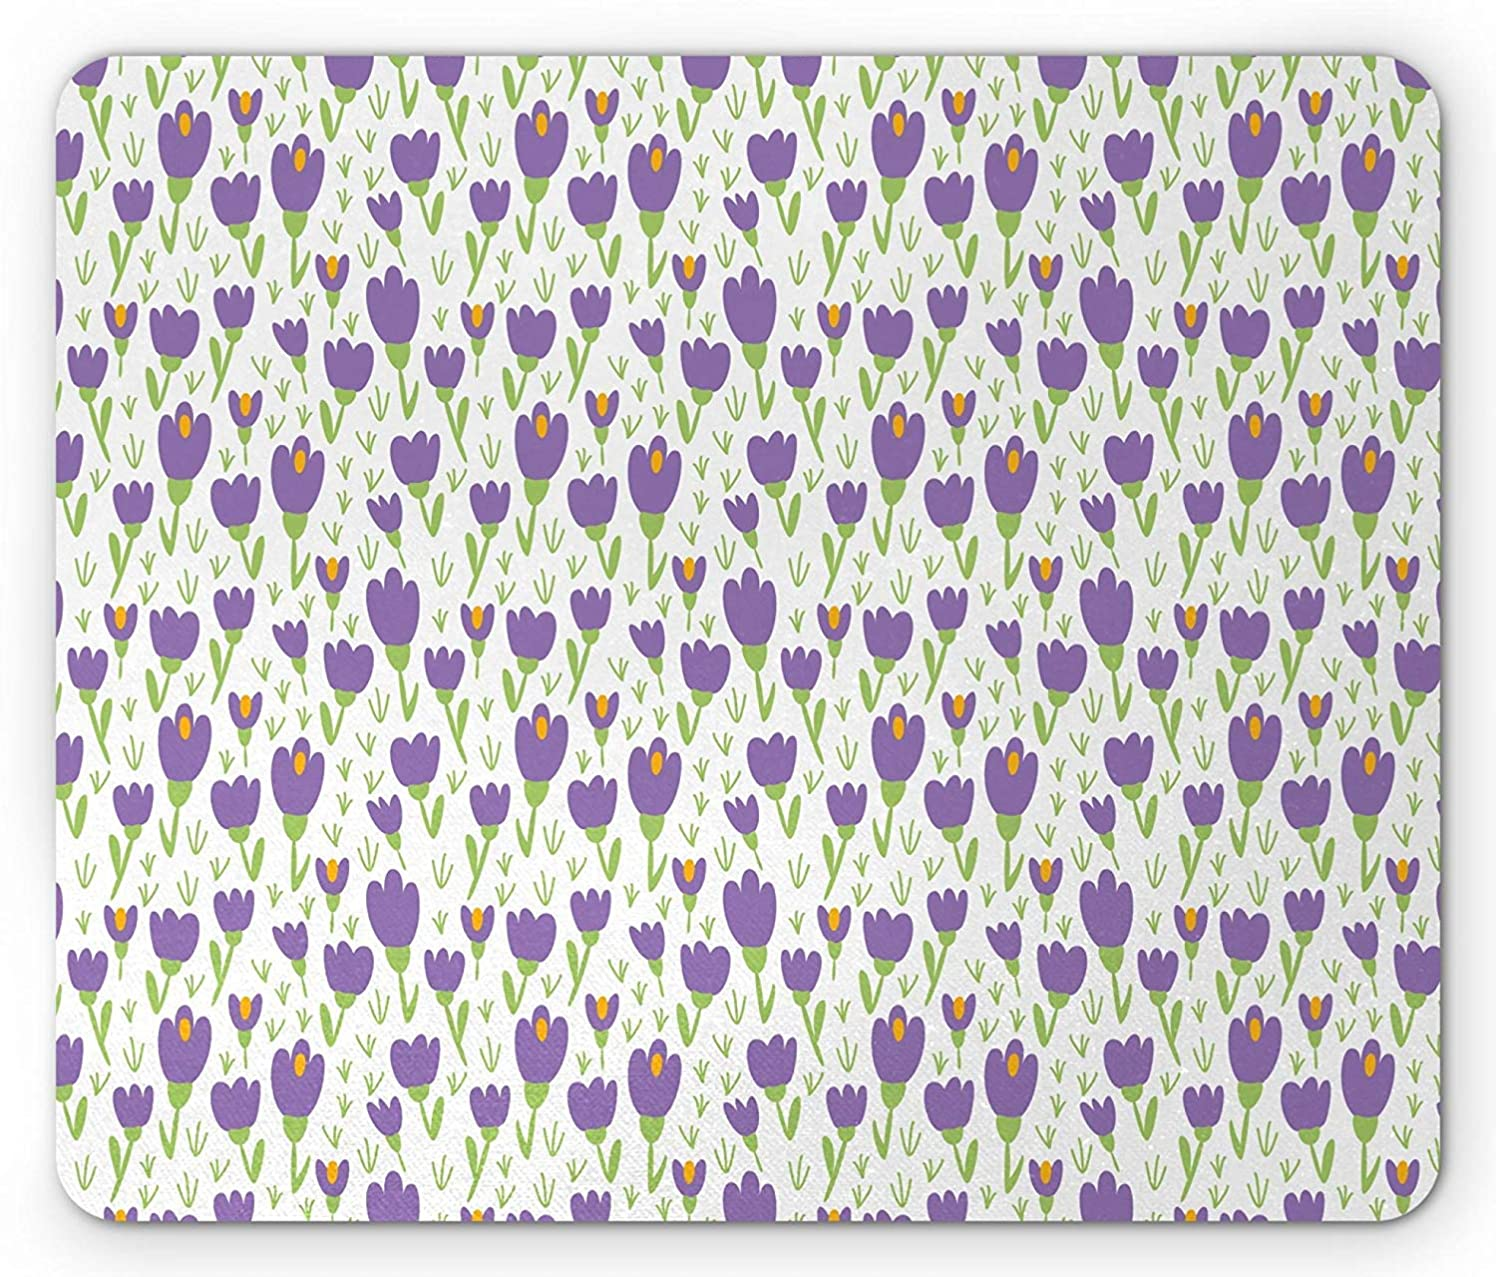 Tulip Mouse Pad, Flower Field Spring Grass Cottage Gardening Theme Yard Growth Mother Nature, Standard Size Rectangle Non-Slip Rubber Mousepad, Violet Lime Green